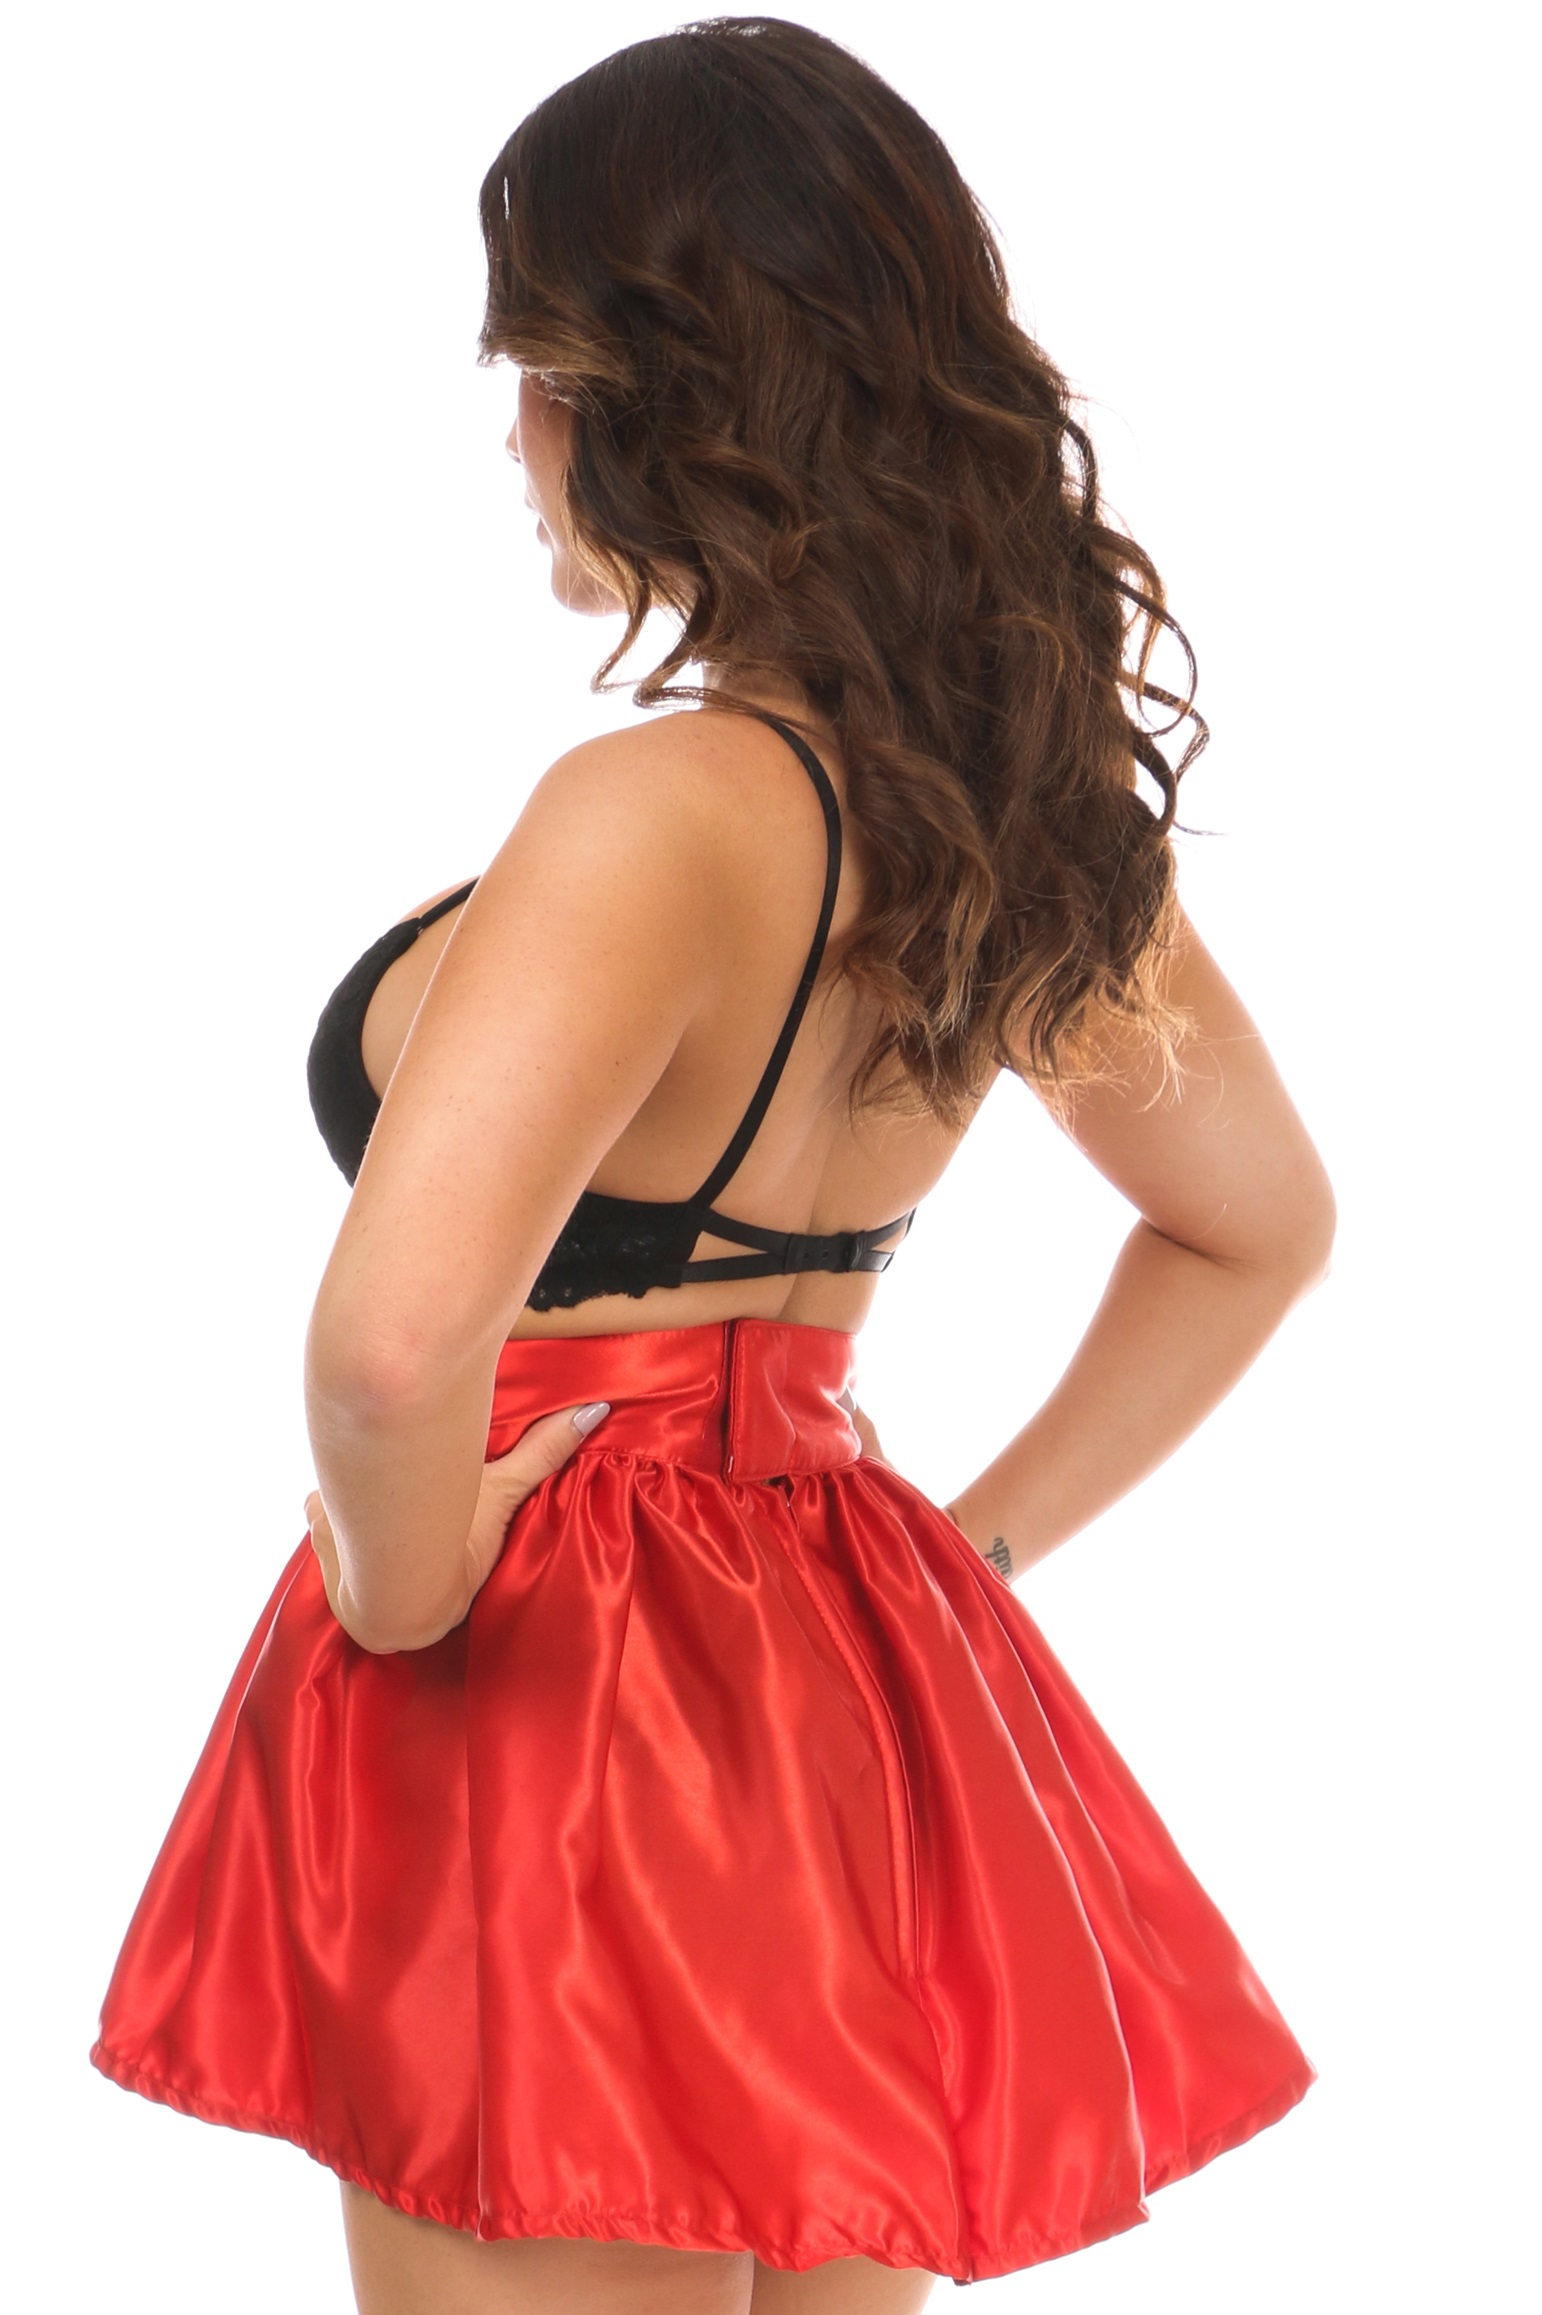 Red Satin Skirt DASACC-512